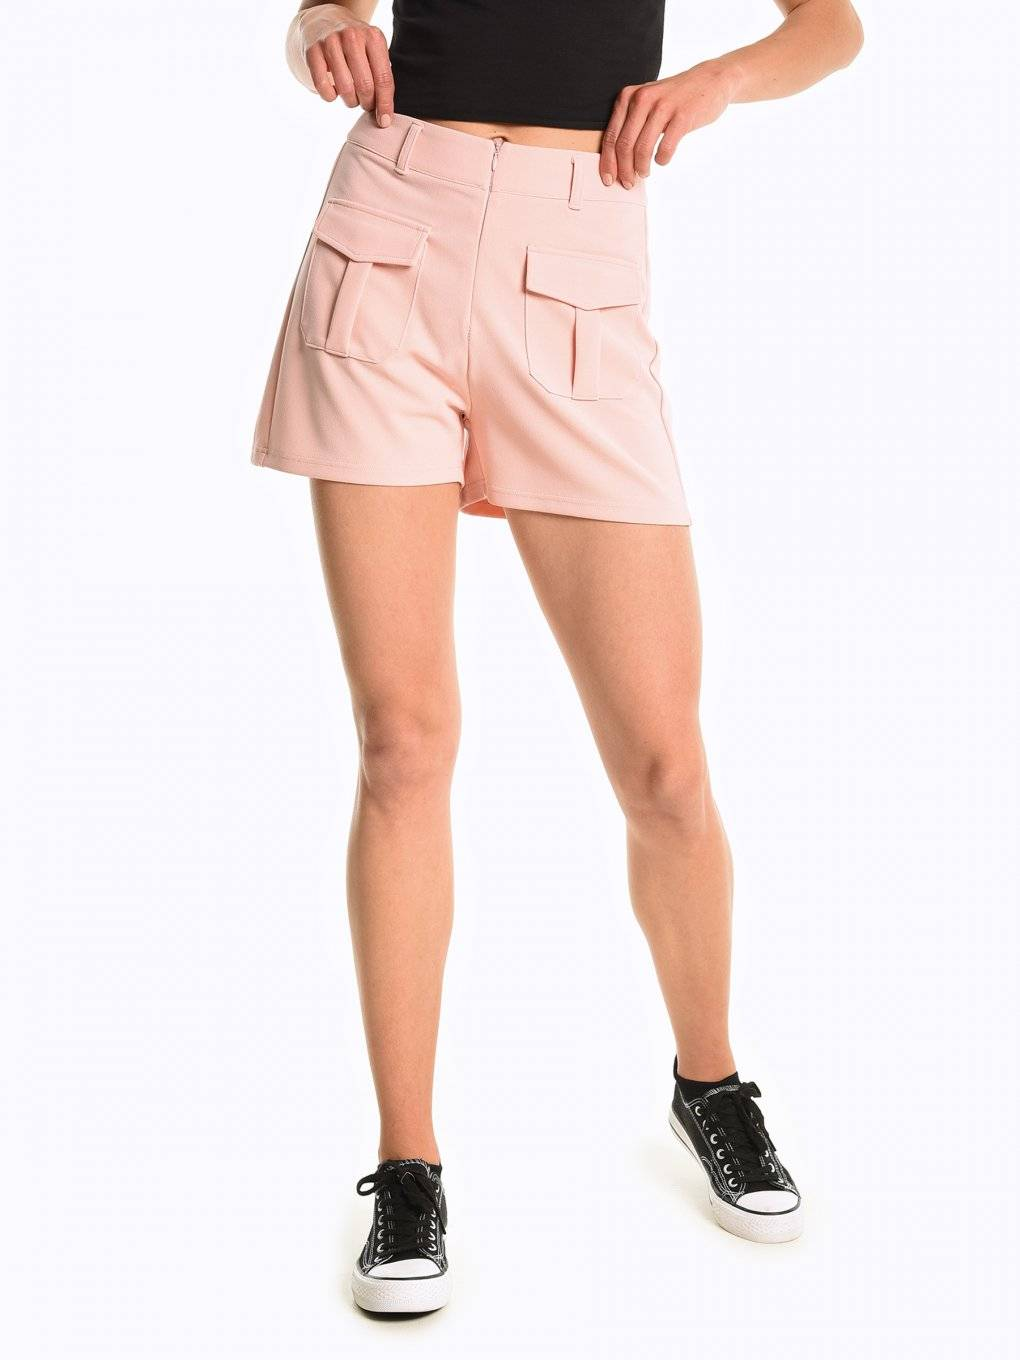 High waisted shorts with front pockets